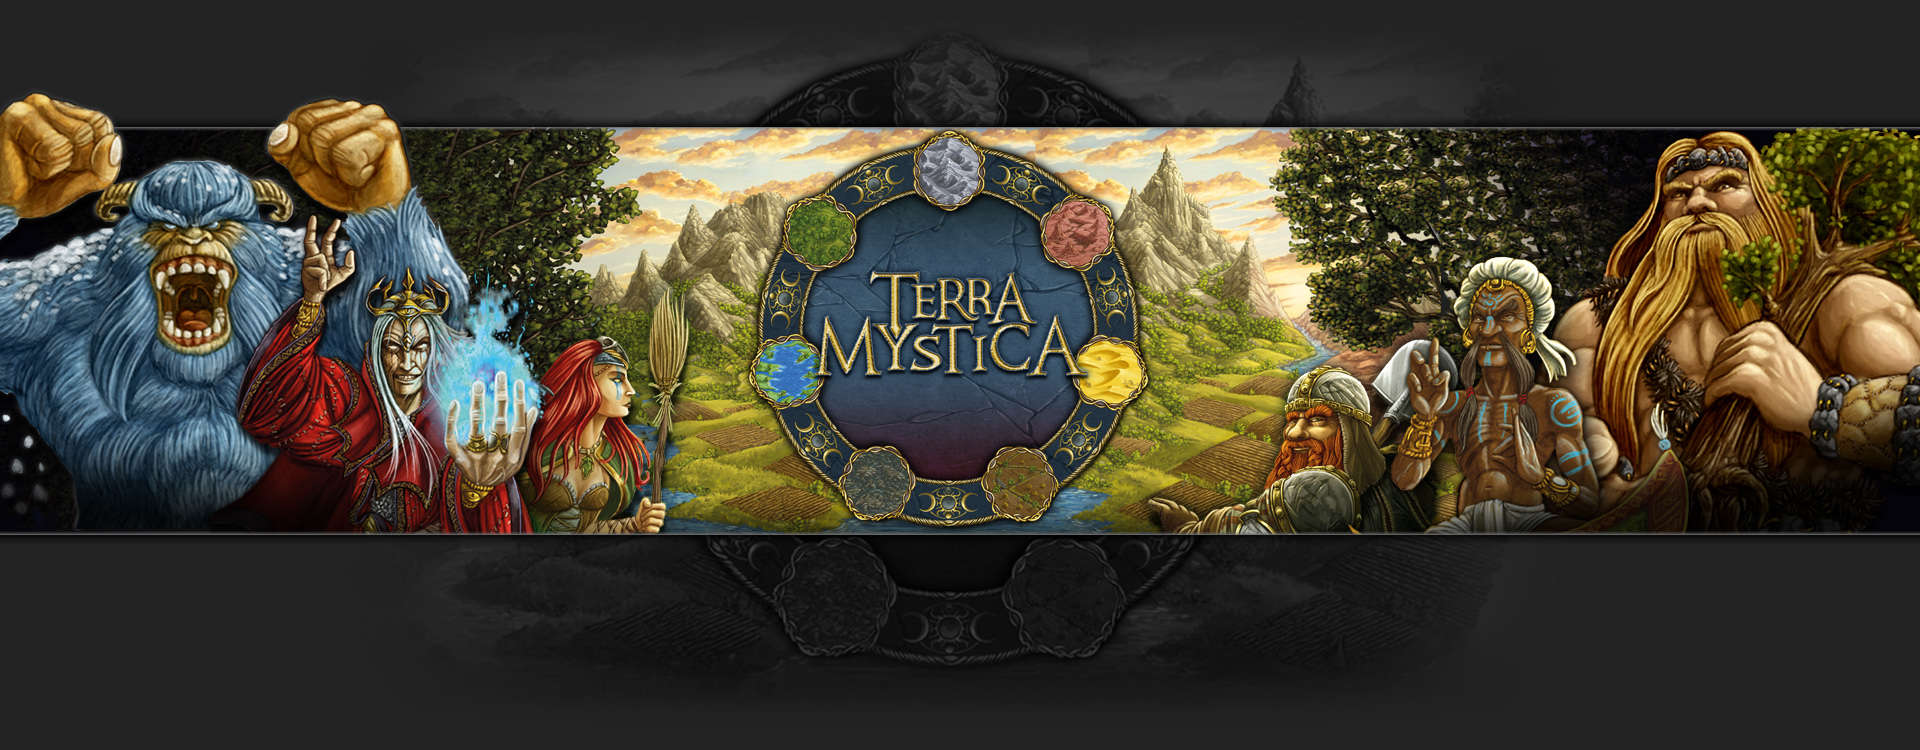 Header image of the board game Terra Mystica